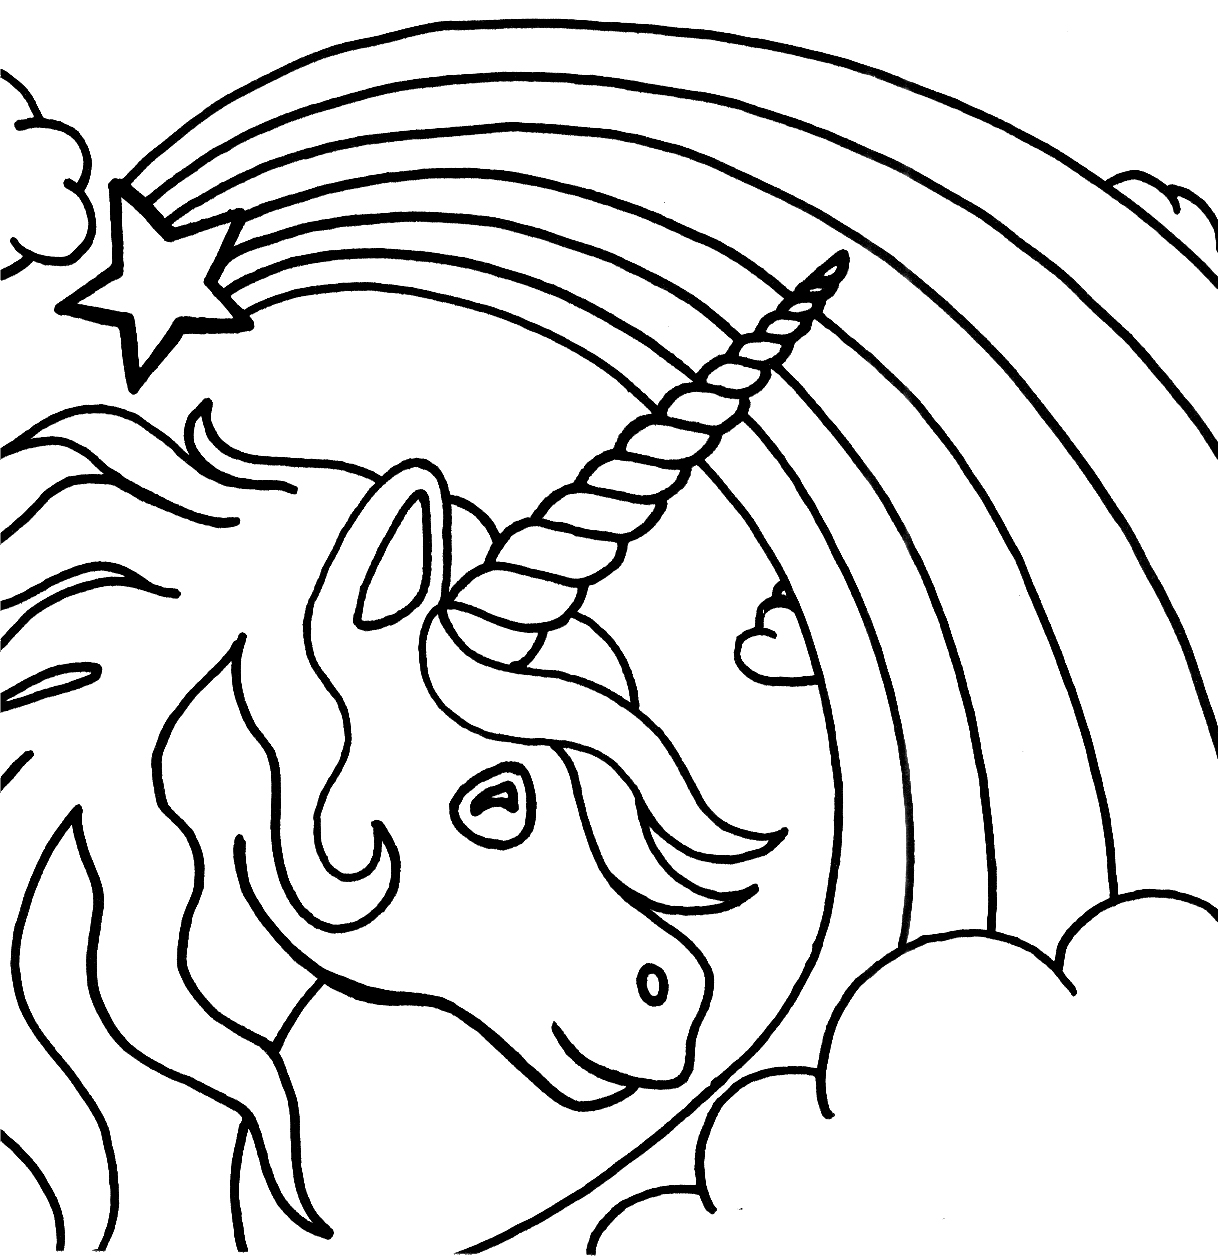 unicorn coloring pages for kids - Coloring Paages